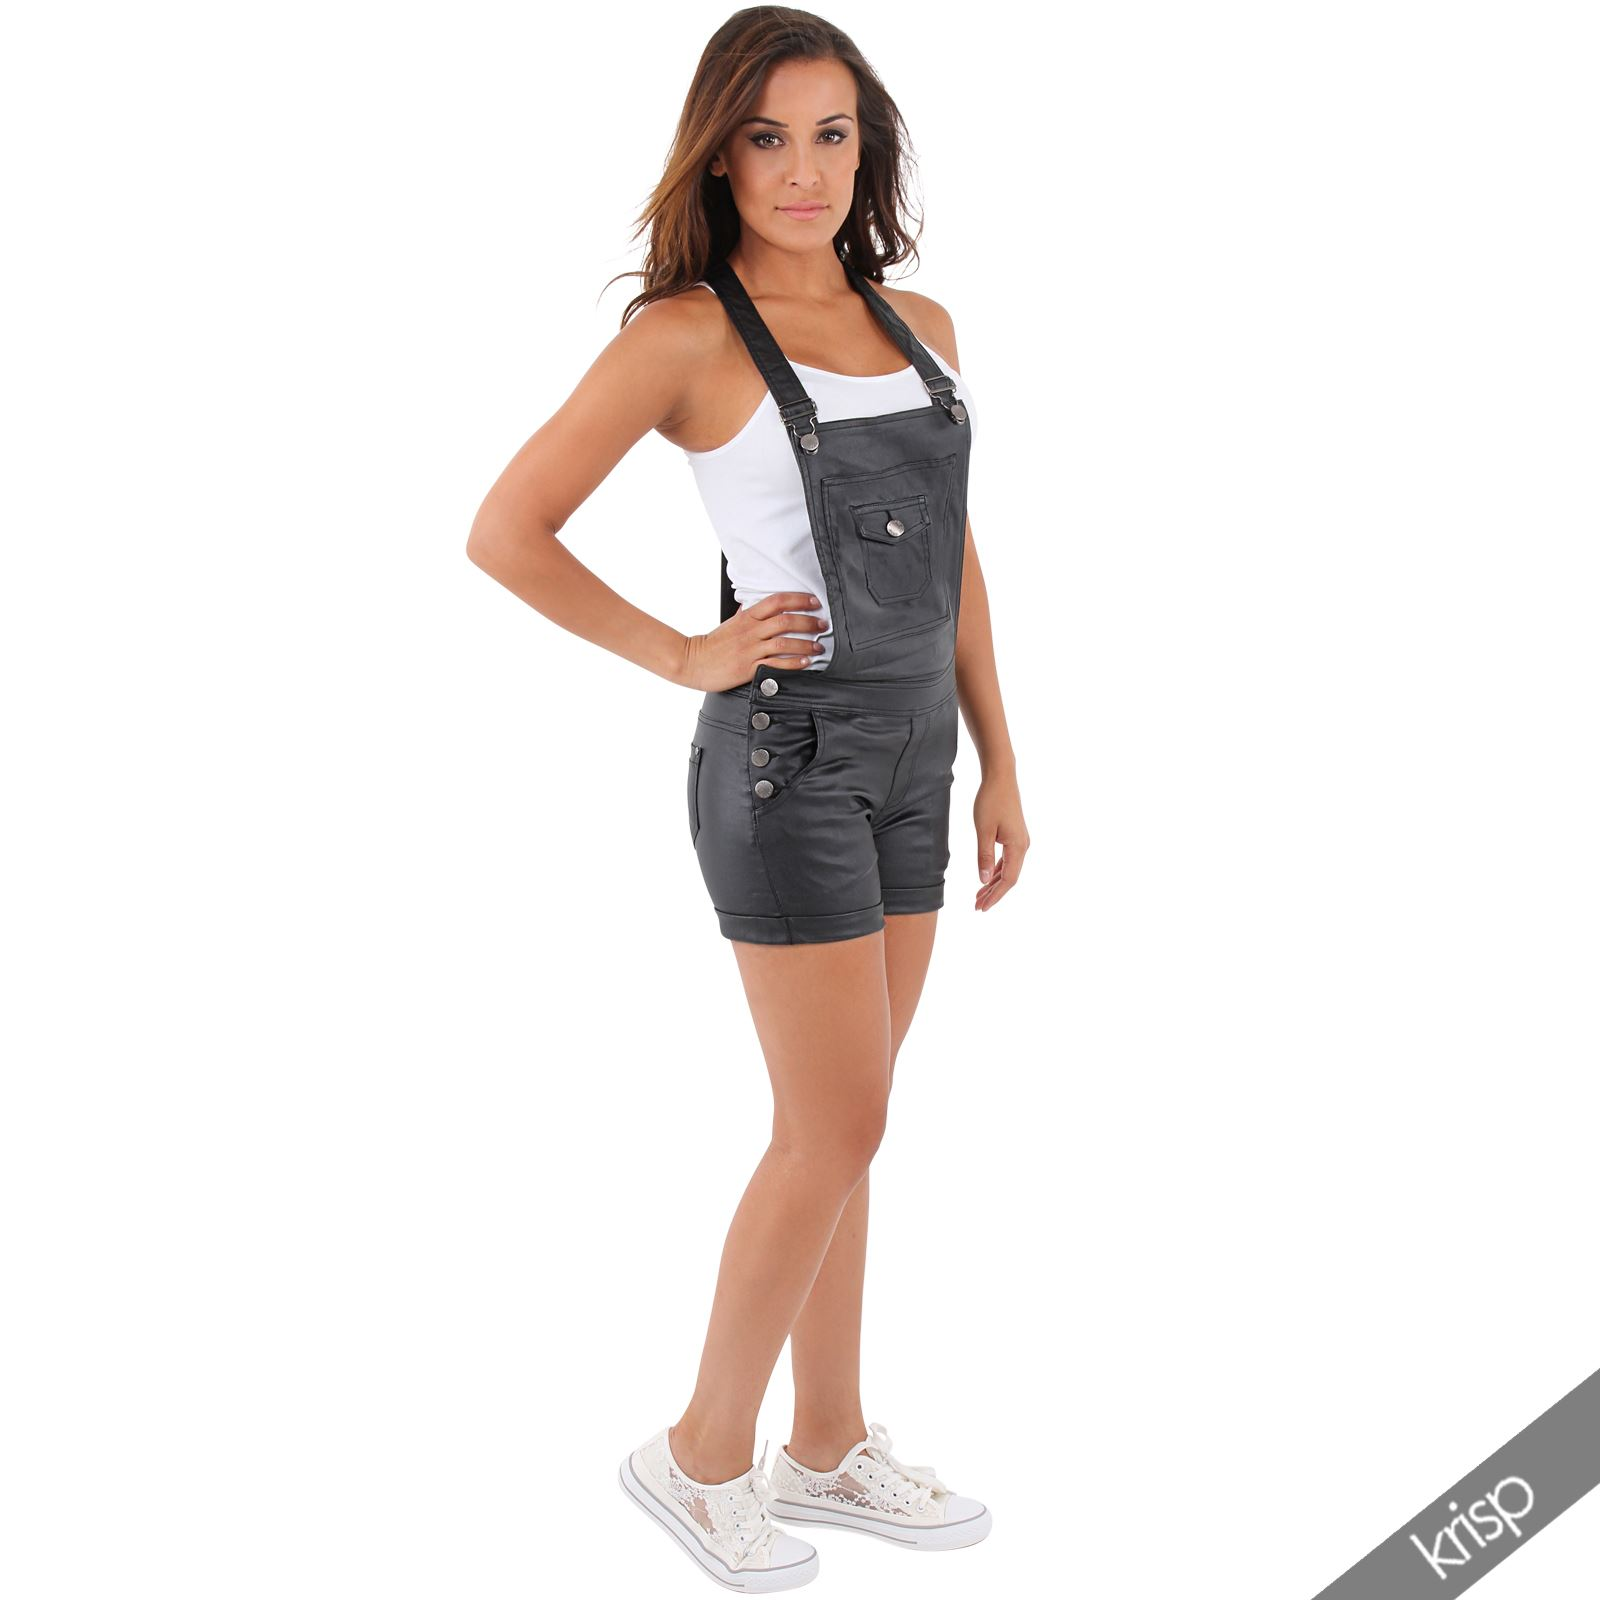 Simple One Of The Easiest Ways To Wear Hot Pants In A Sophisticated Manner Is